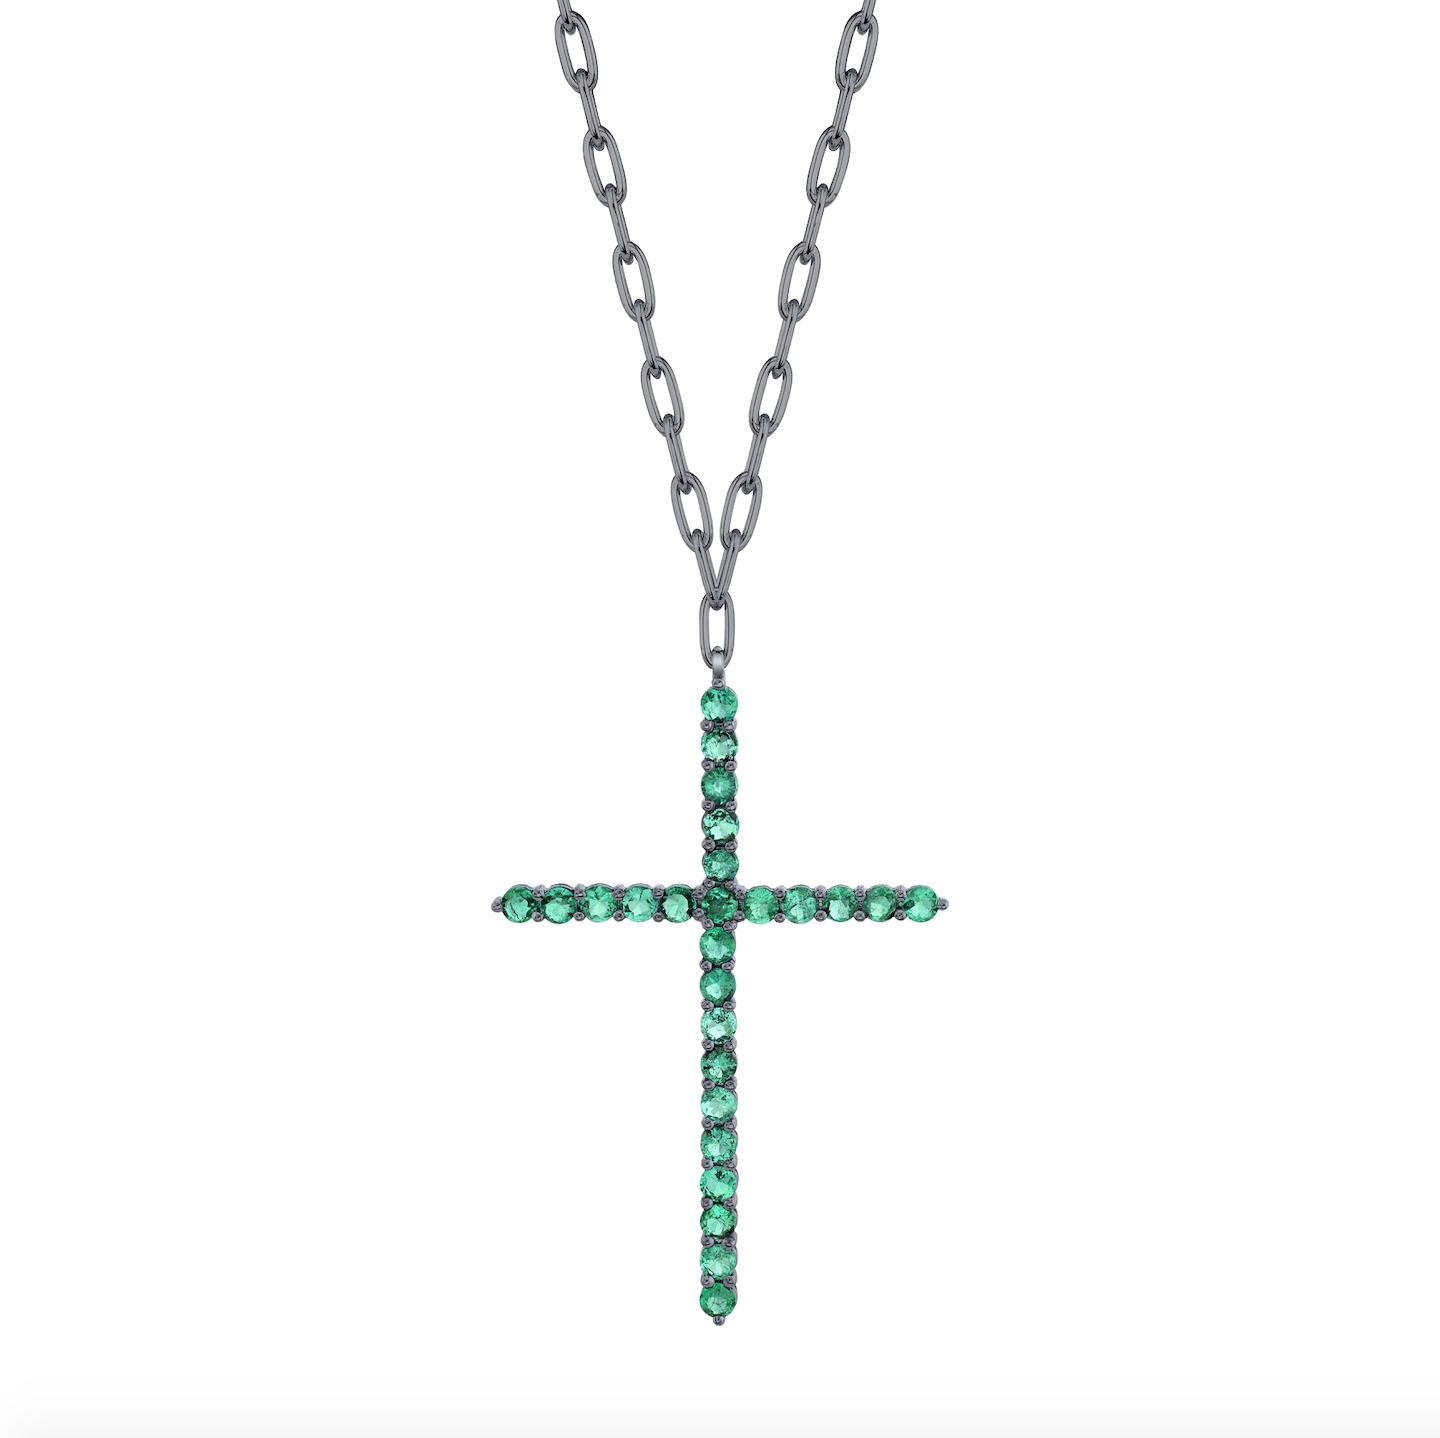 LARGE EMERALD CROSS PENDANT NECKLACE